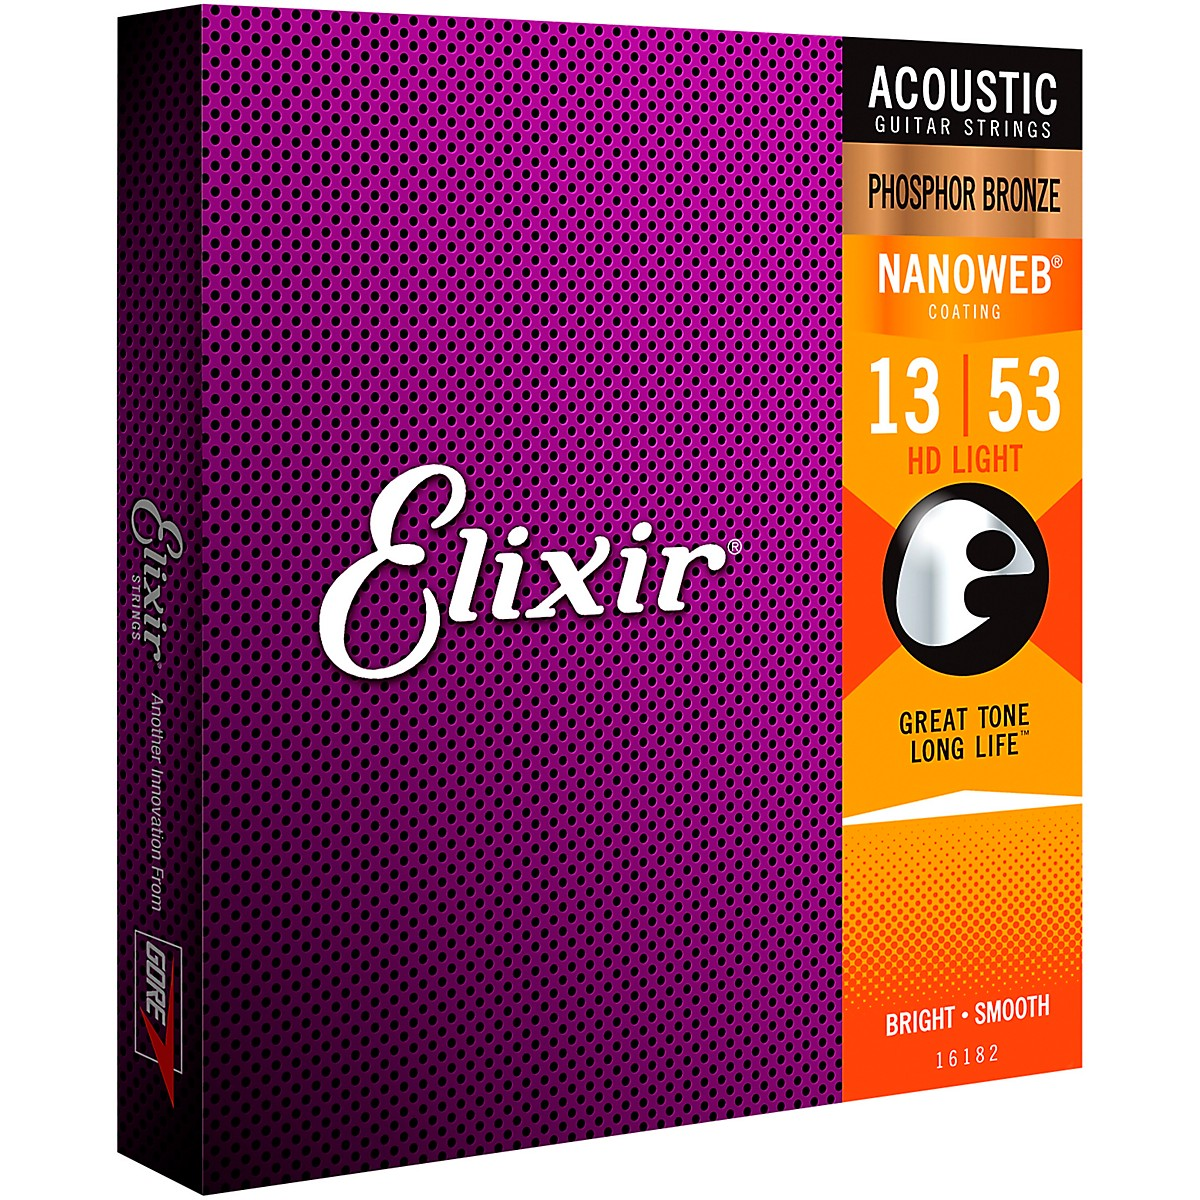 Elixir Phosphor Bronze Acoustic Guitar Strings with NANOWEB Coating, HD Light (.013-.053)